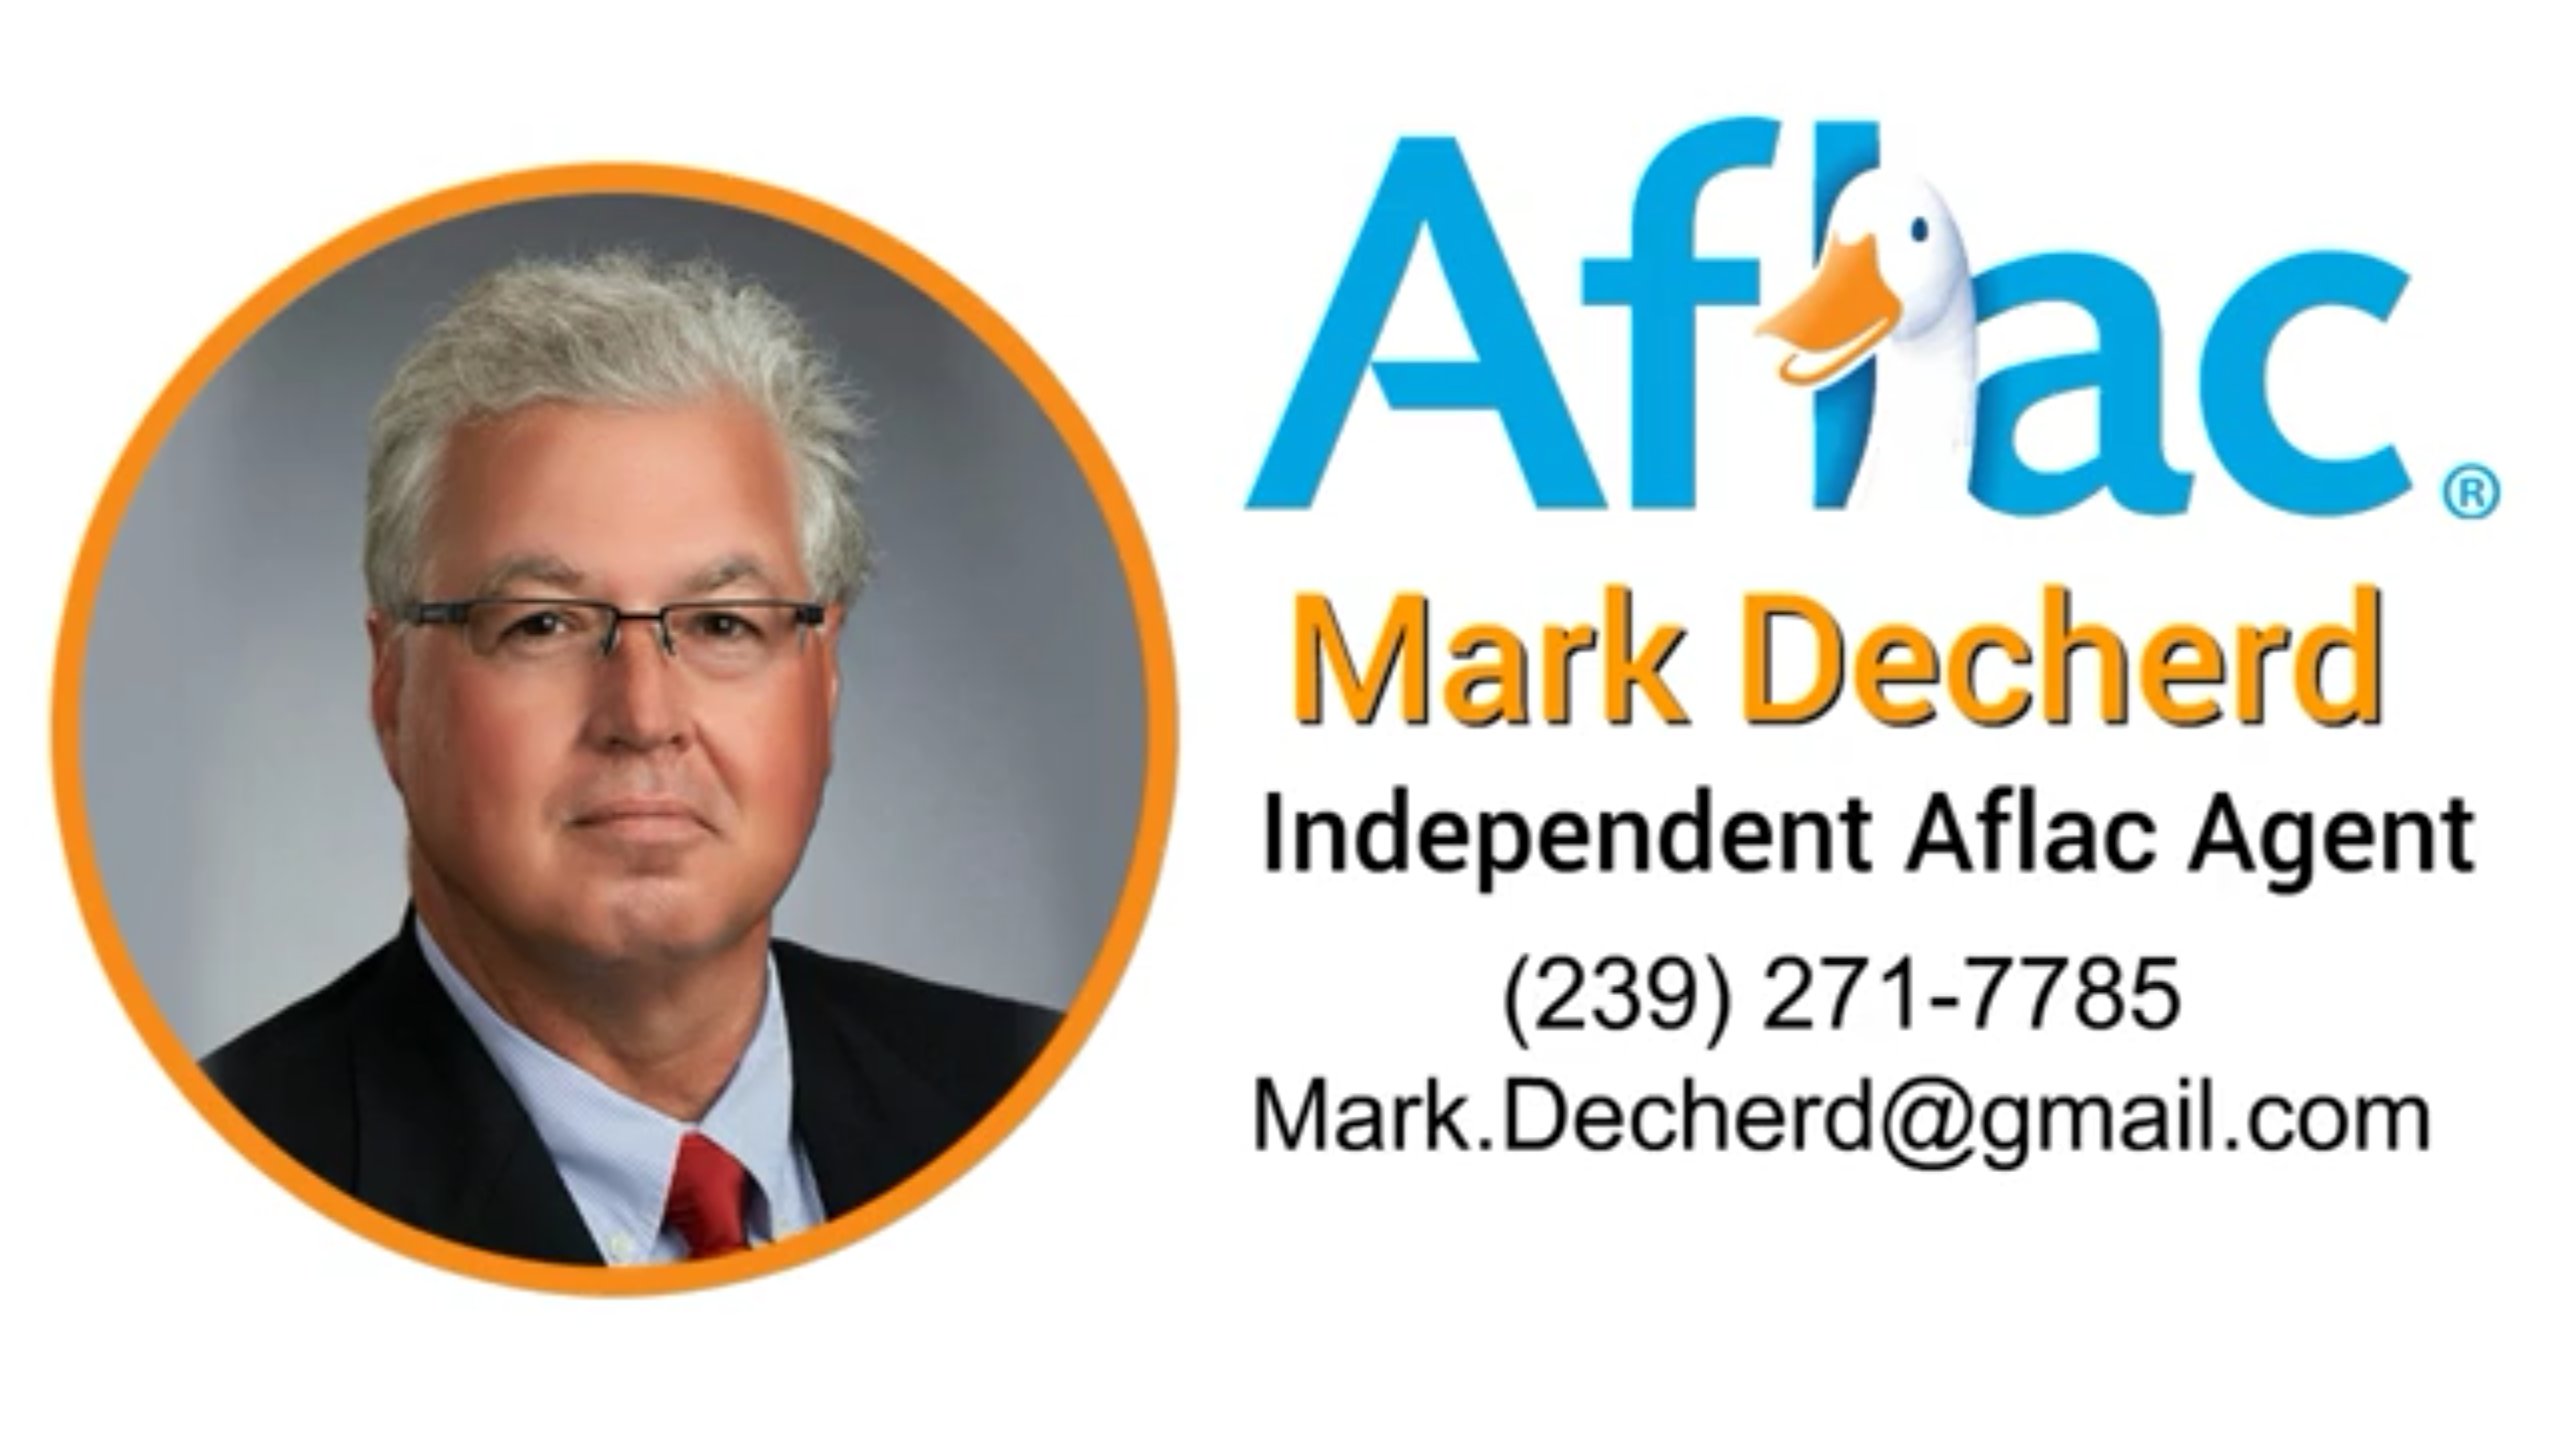 David Mark Decherd Aflac